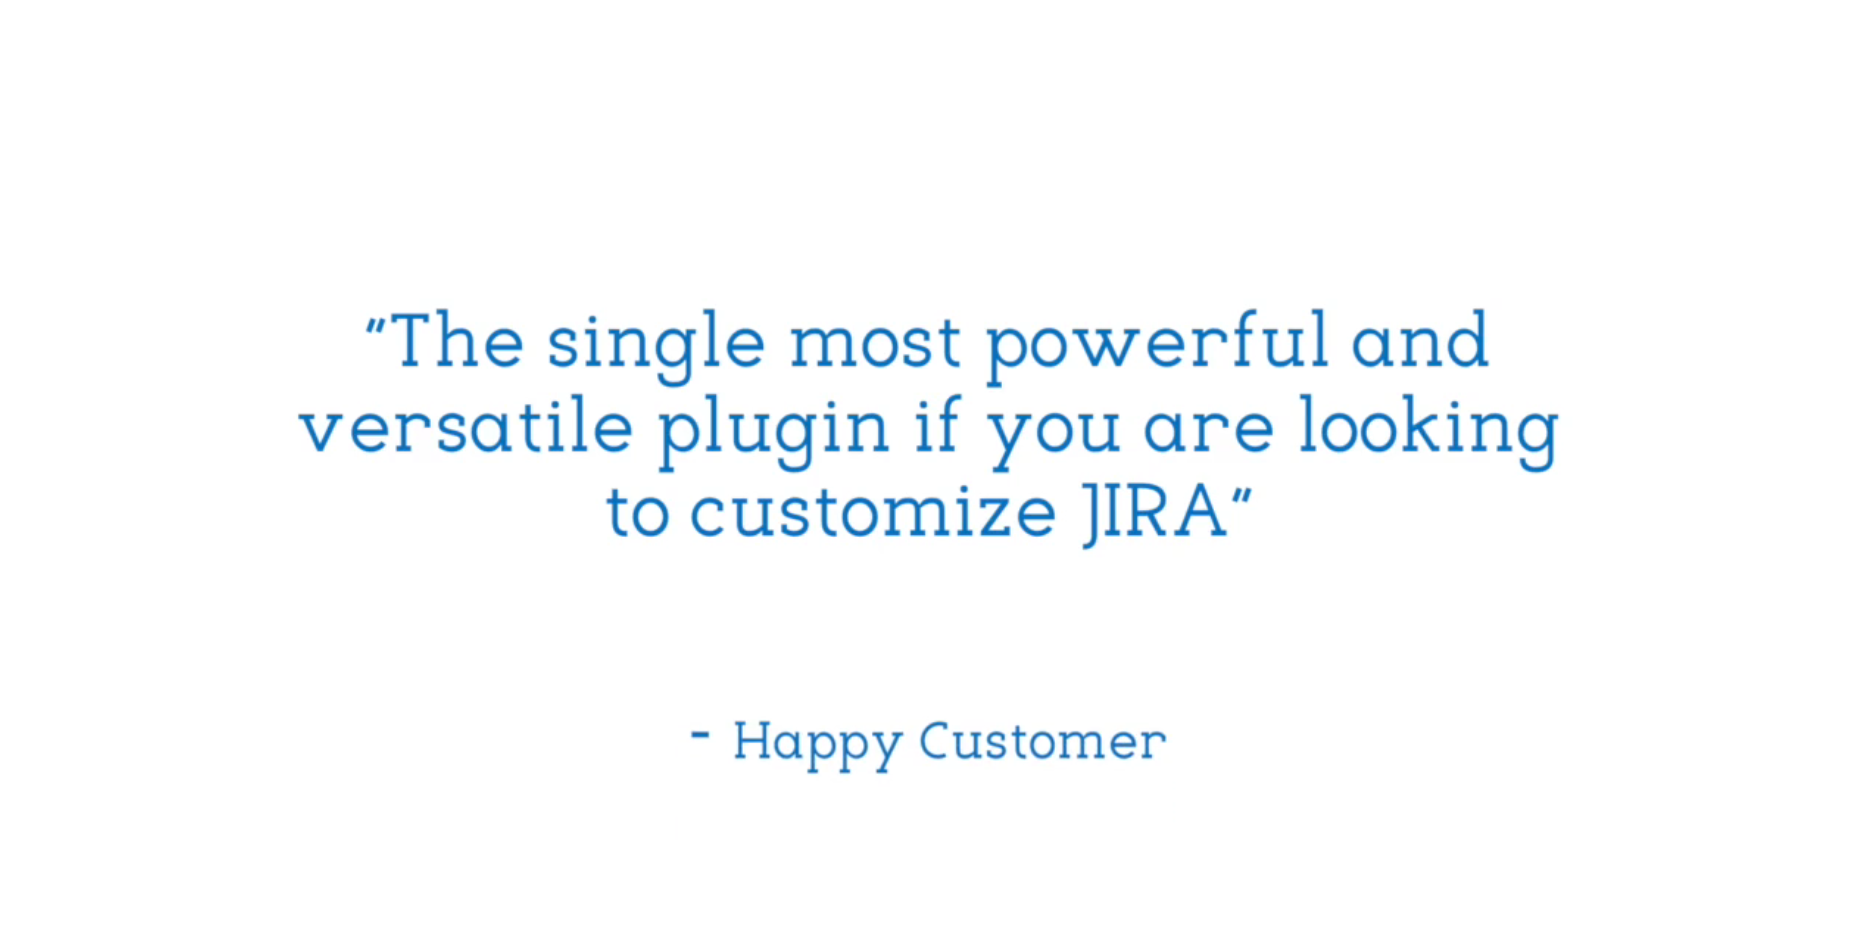 Fire Up Your Jira Capabilities Cprime